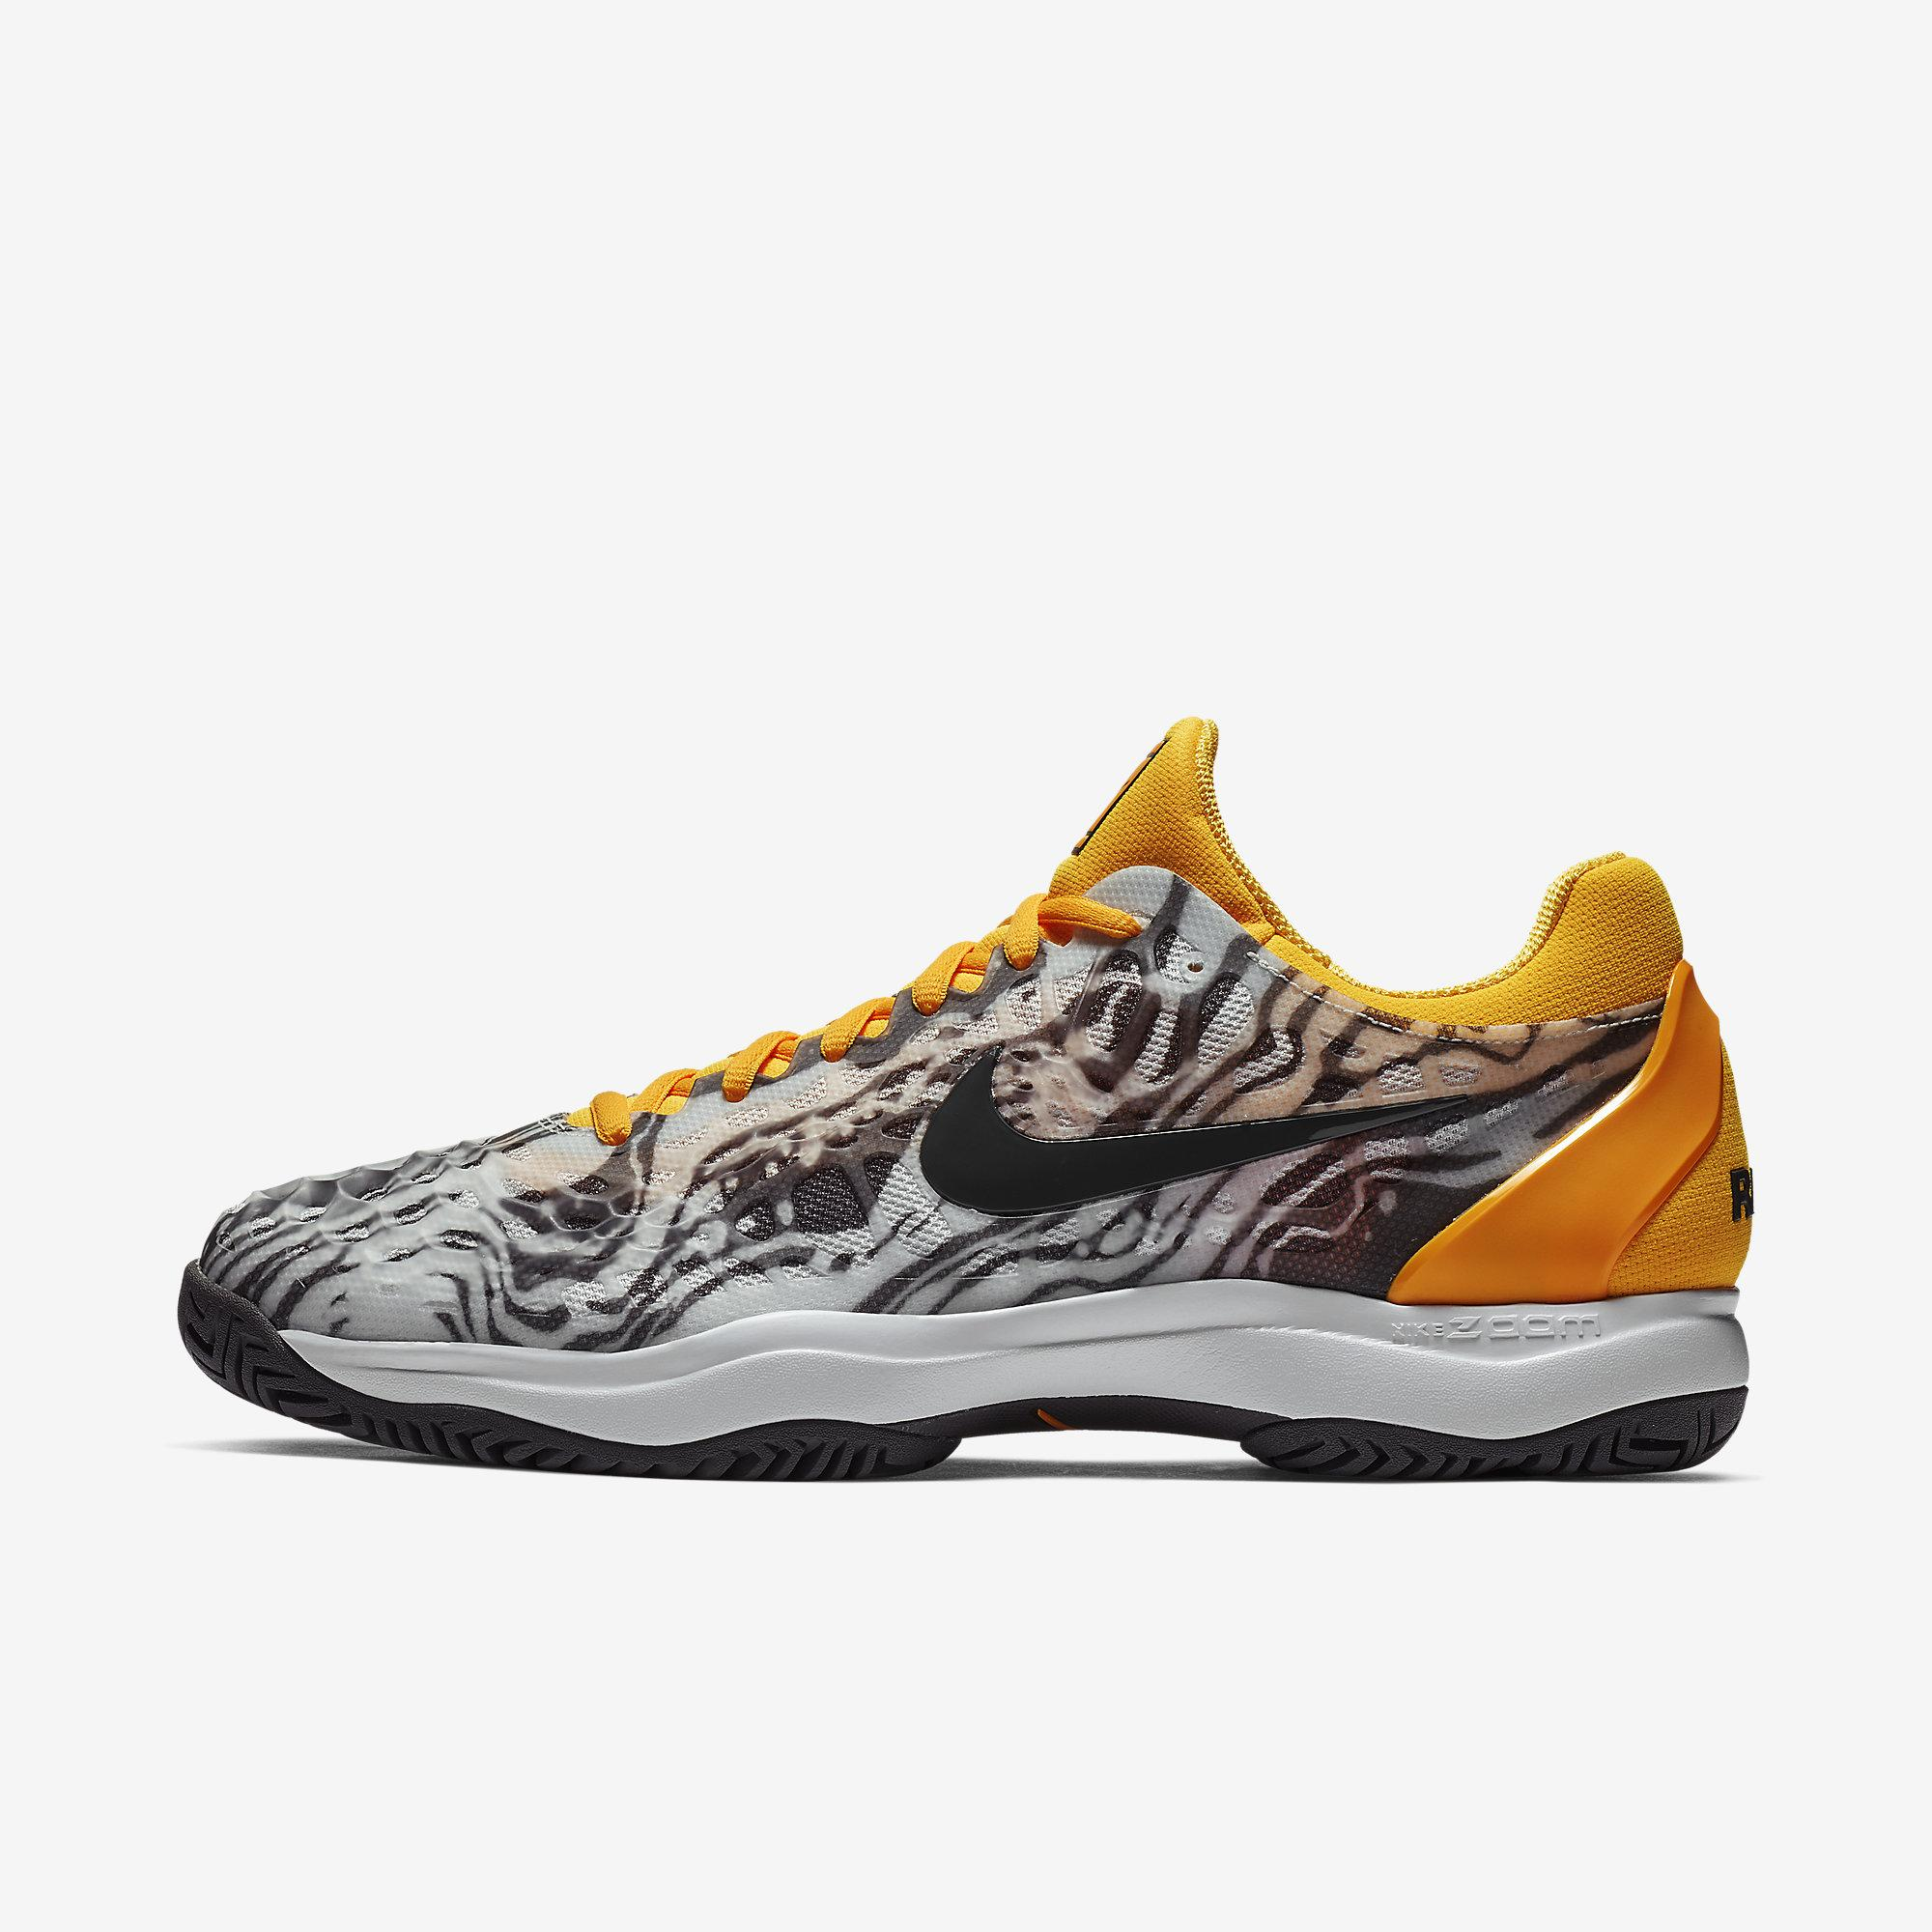 0571739dba5d Nike Mens Zoom Cage 3 Rafa Tennis Shoes - Pure Platinum Laser Orange -  Tennisnuts.com